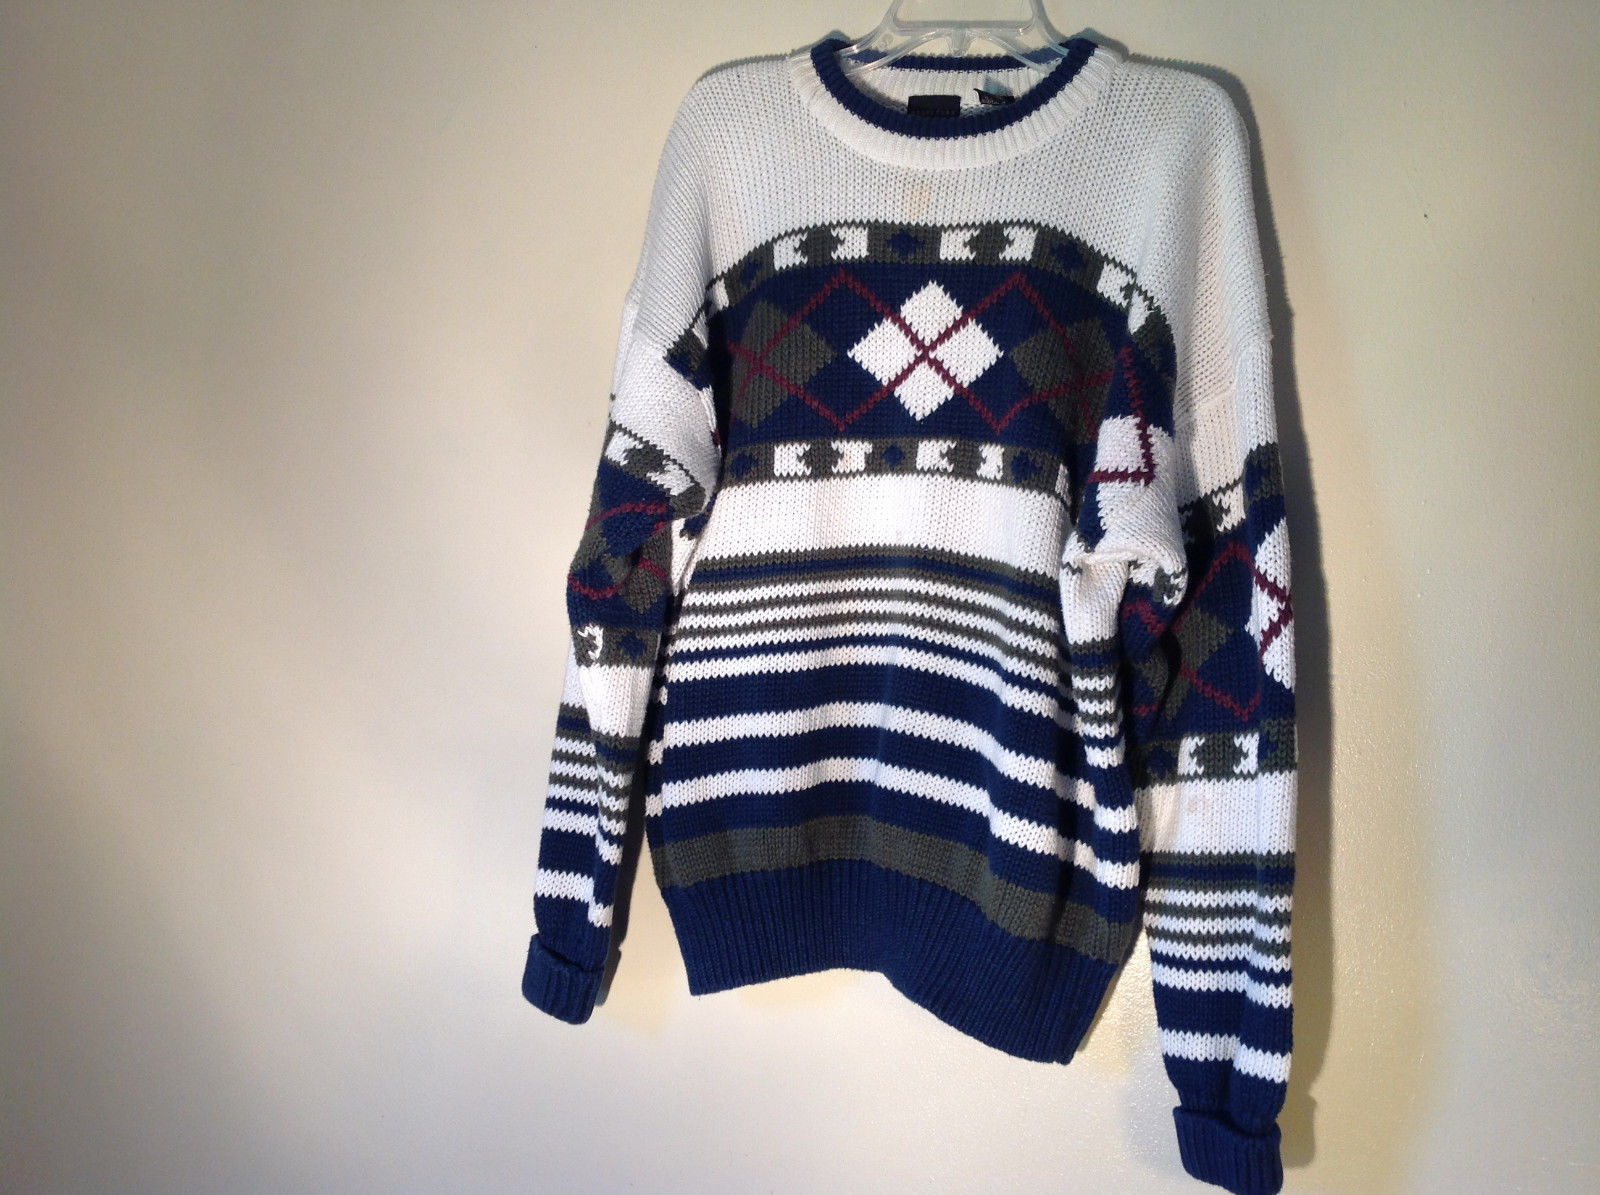 Warm Heavy Structure Winter Sweater Patterned White Green Navy Blue Size Large